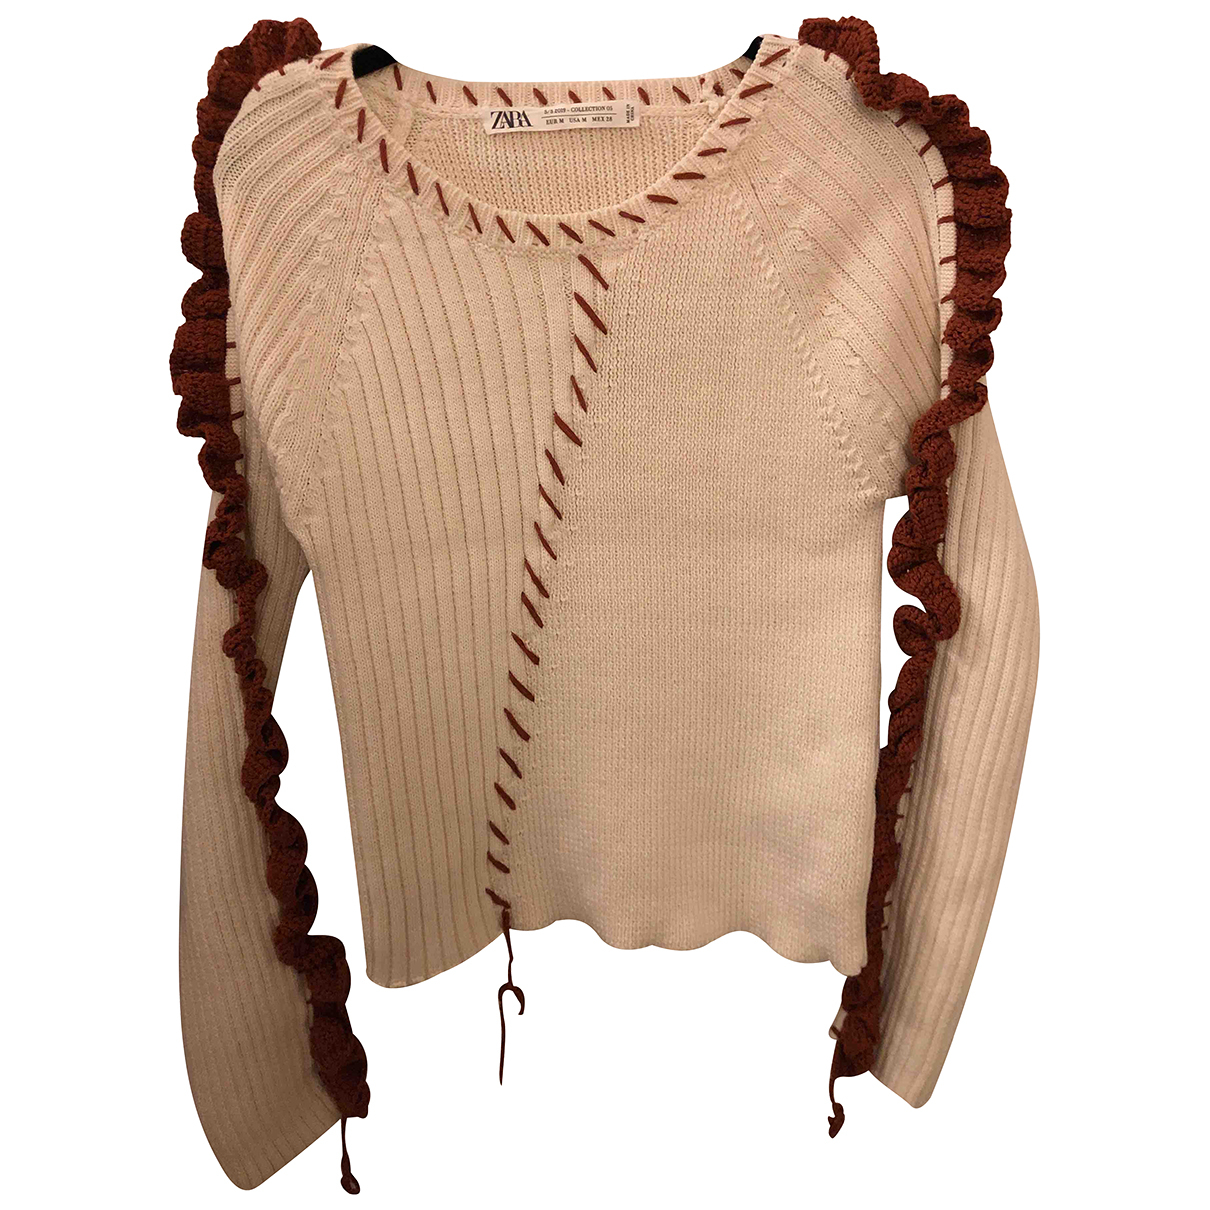 Zara N Beige Cotton Knitwear for Women M International